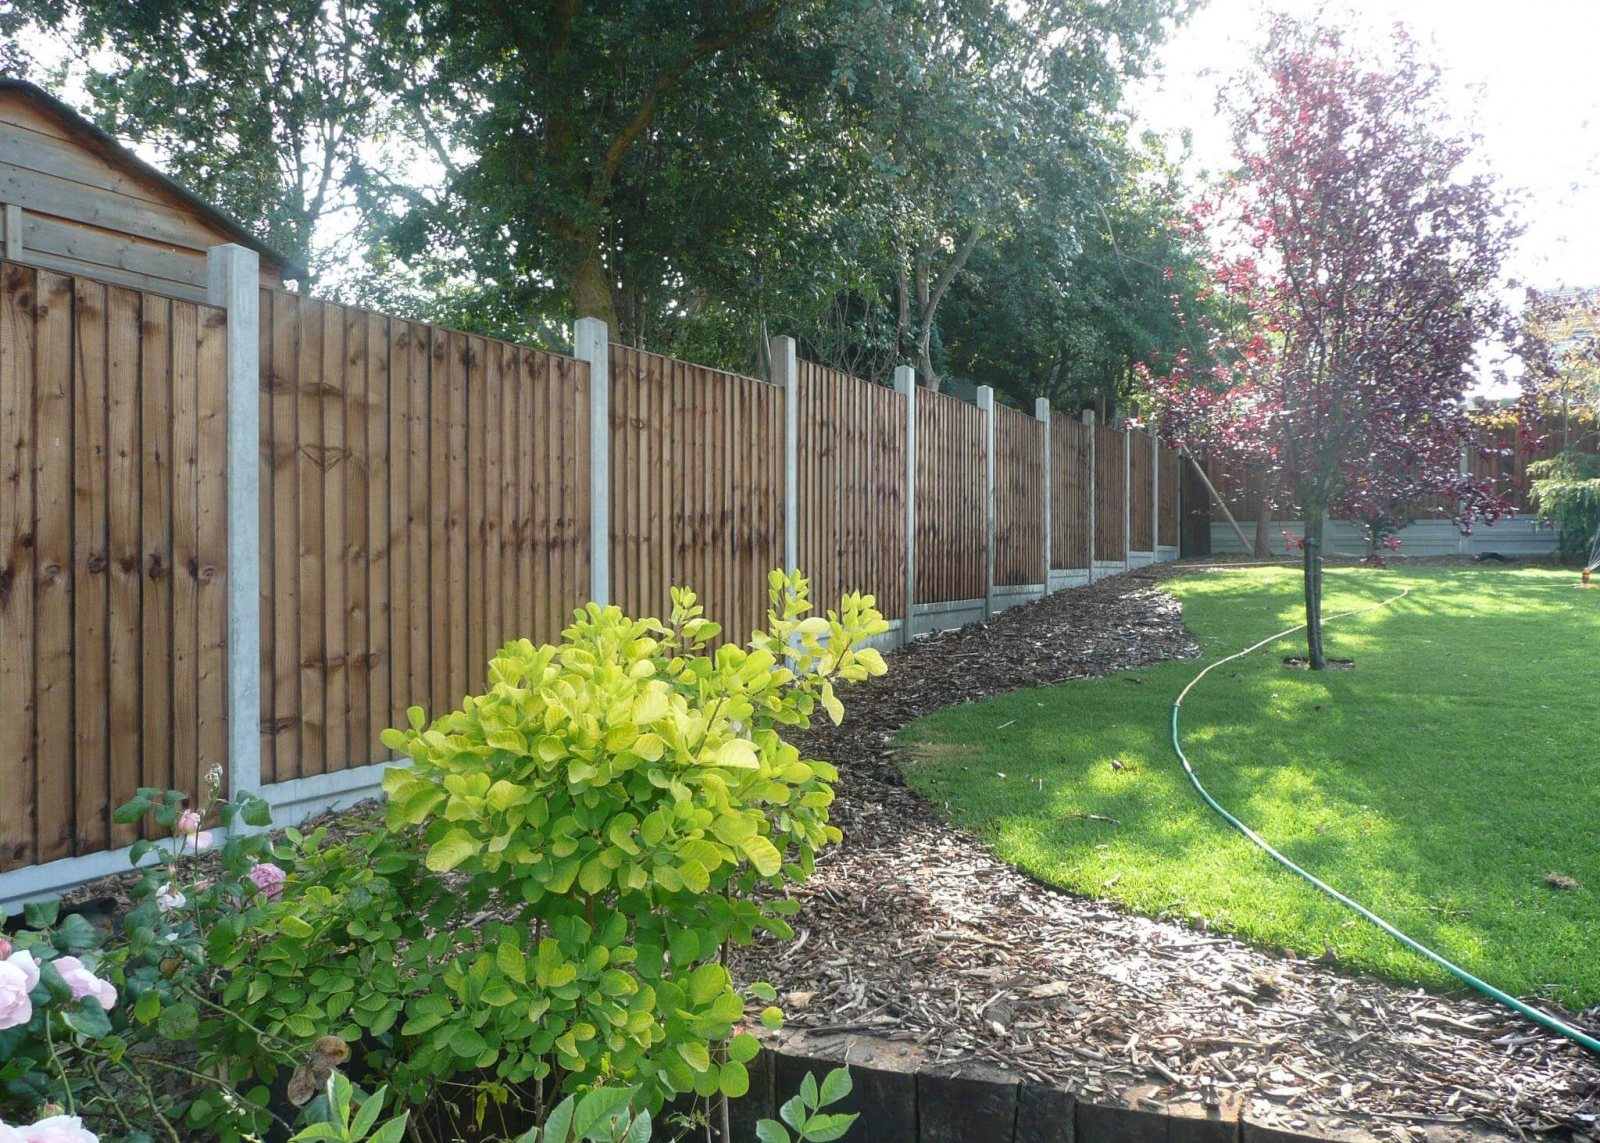 Landscaped Lawn Hornchurch area